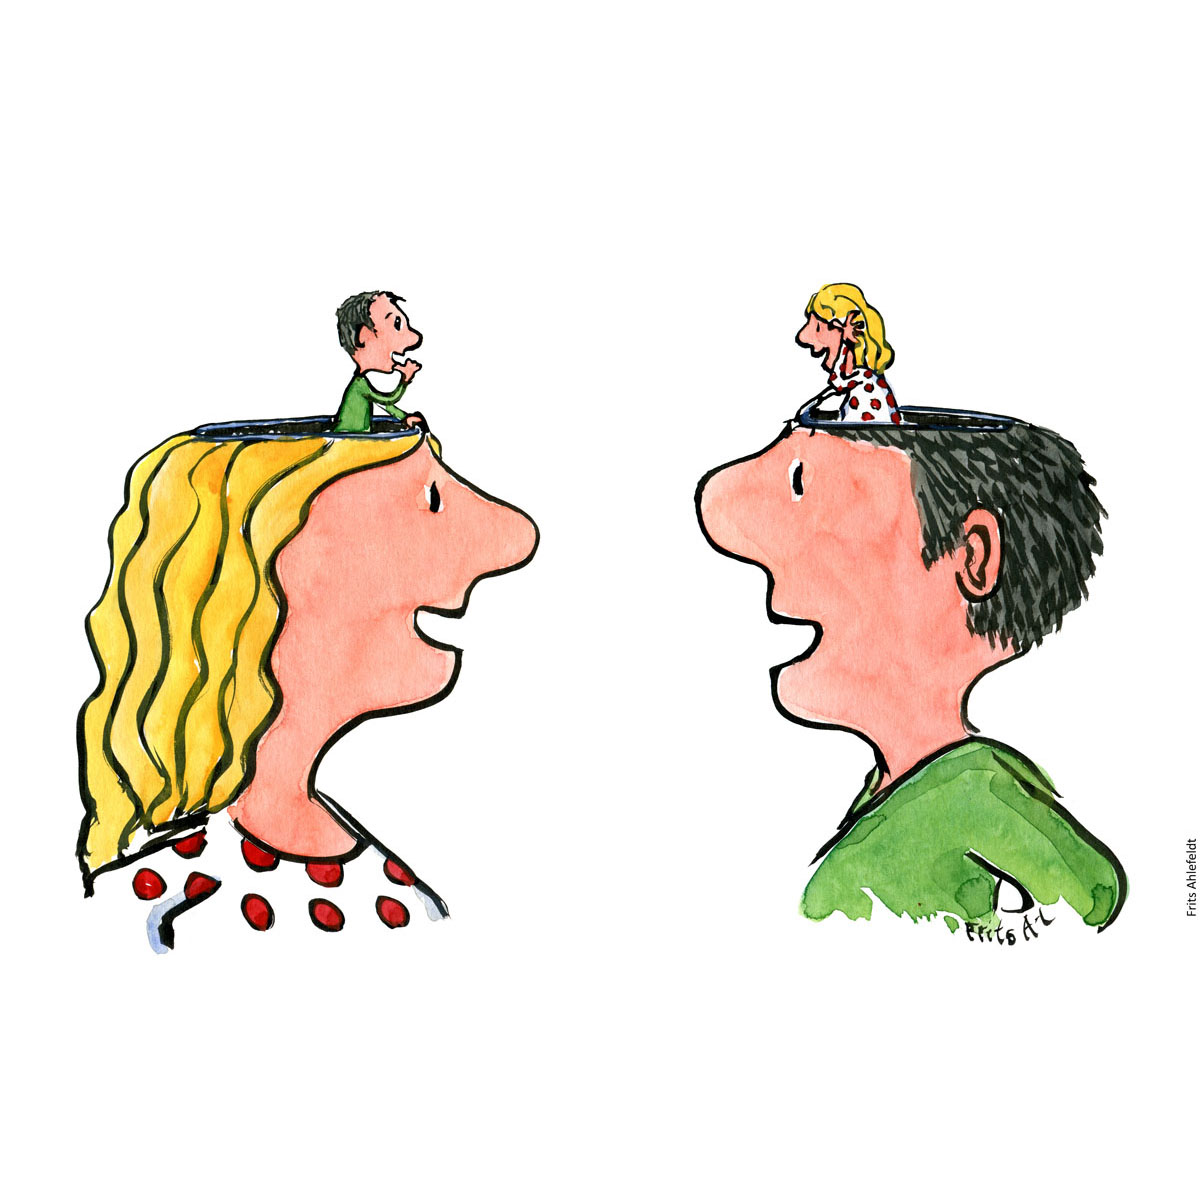 Drawing of two persons, woman and man. With a tiny version of each other on top of the head, but in the head of the other. Empathy and mirror talks focus. Handmade color illustration by Frits Ahlefeldt